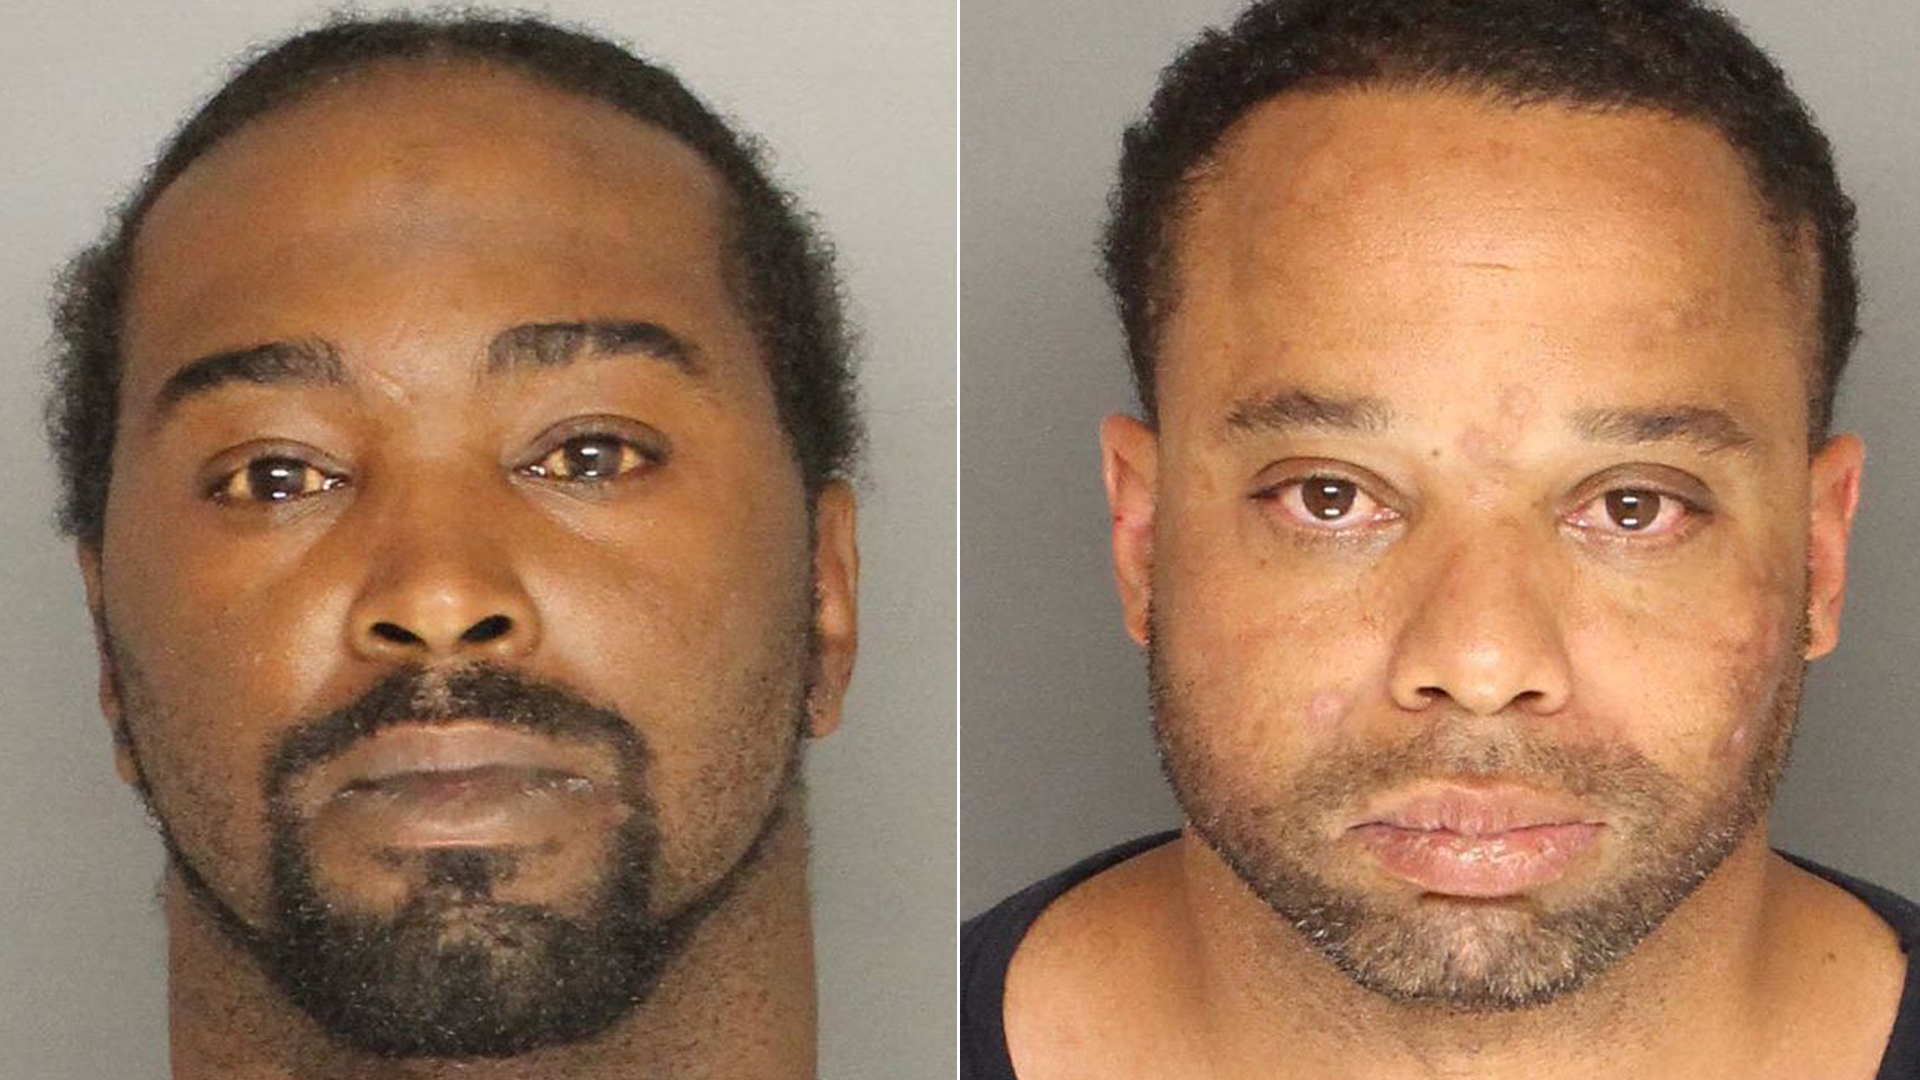 Tyrone Taylor and Henry Jernigan are seen in booking photos provided by the Santa Barbara County Sheriff's Office on Aug. 30, 2018.